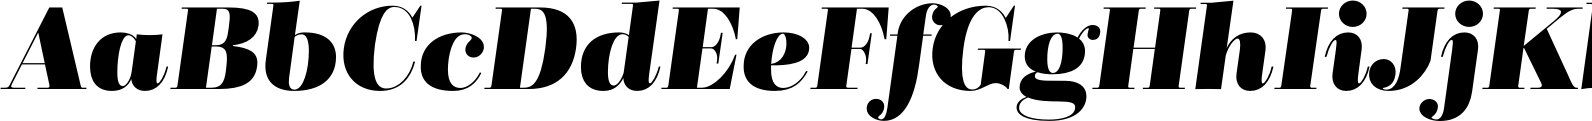 BridoneTitling Bold Italic